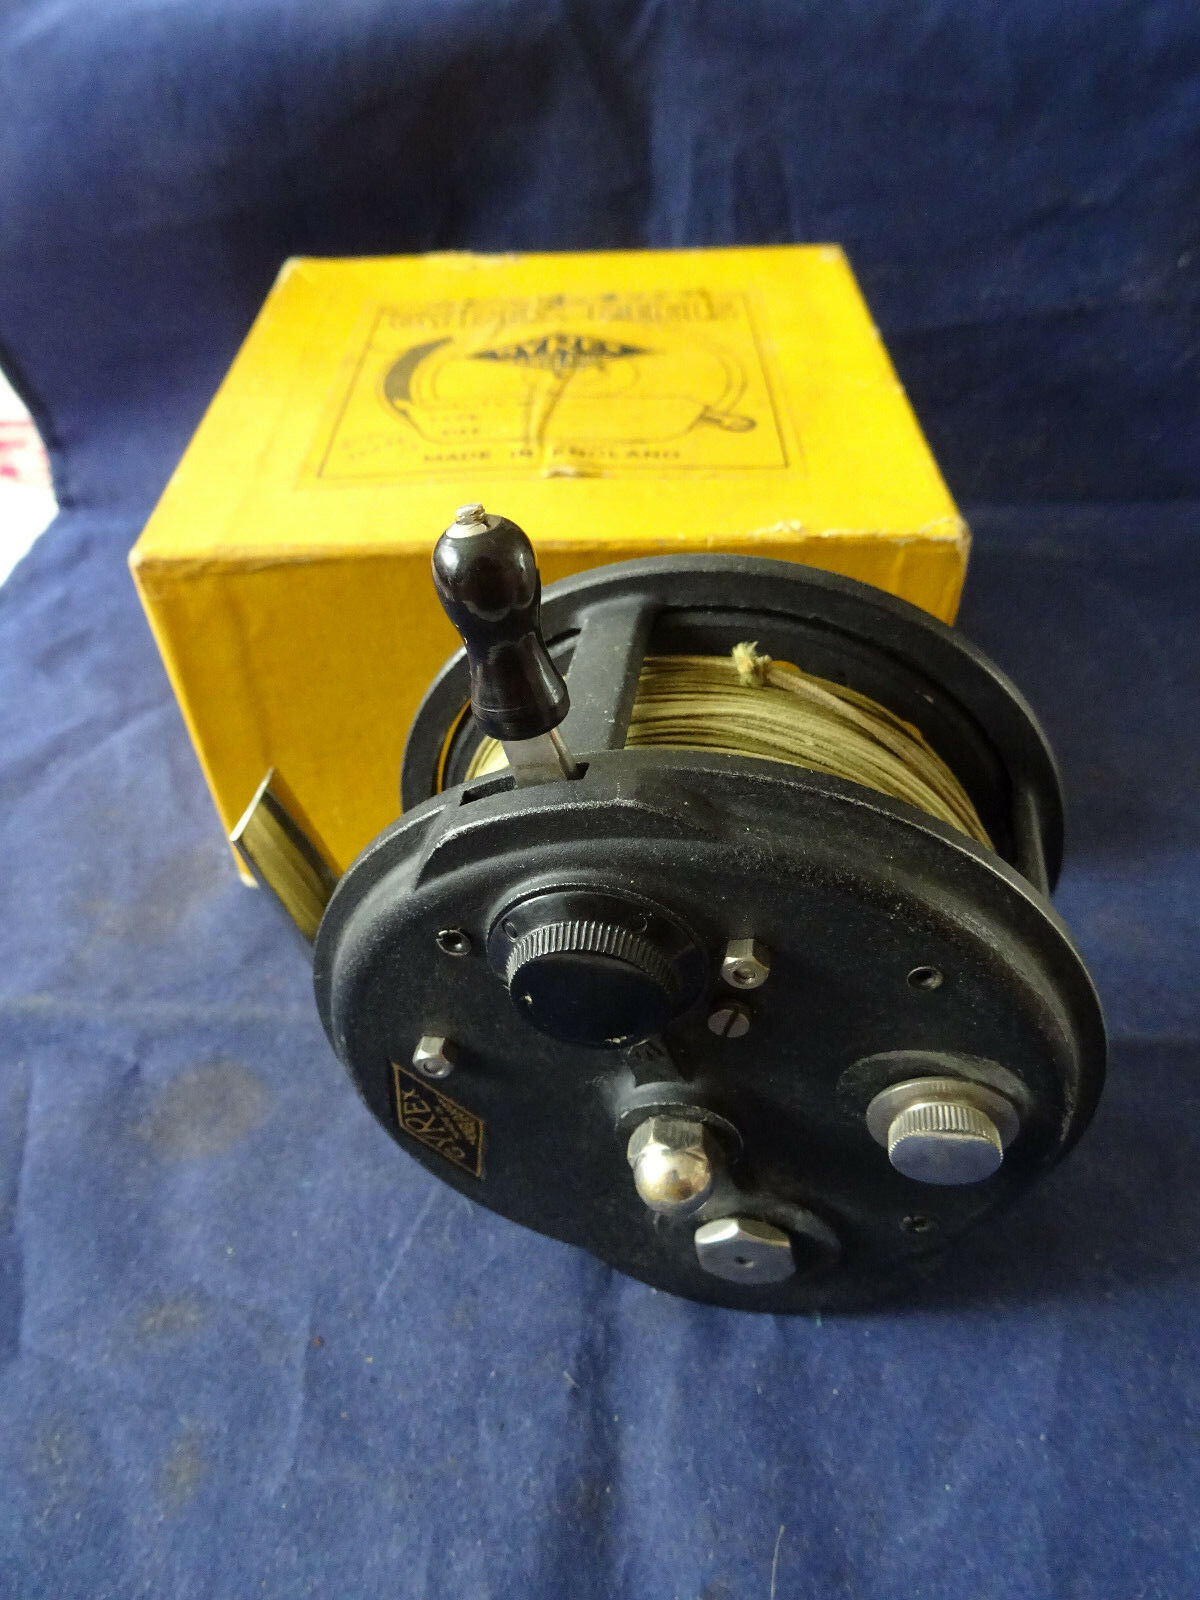 A VERY GOOD  VINTAGE 4  MILWARDS GYREX CASTING CENTREPIN REEL  fast delivery and free shipping on all orders